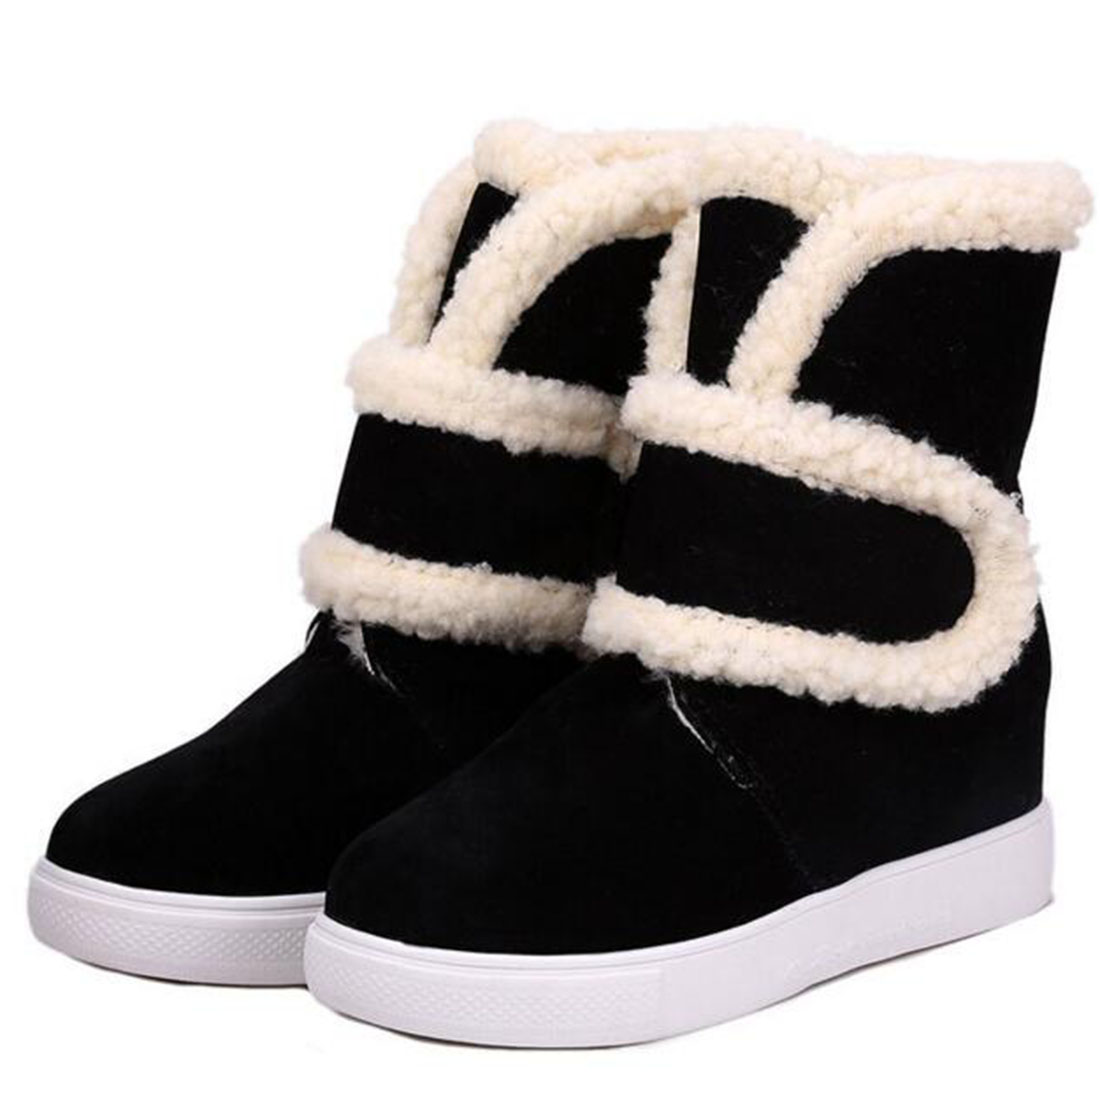 Online Get Cheap Lady Snow Boots -Aliexpress.com | Alibaba Group